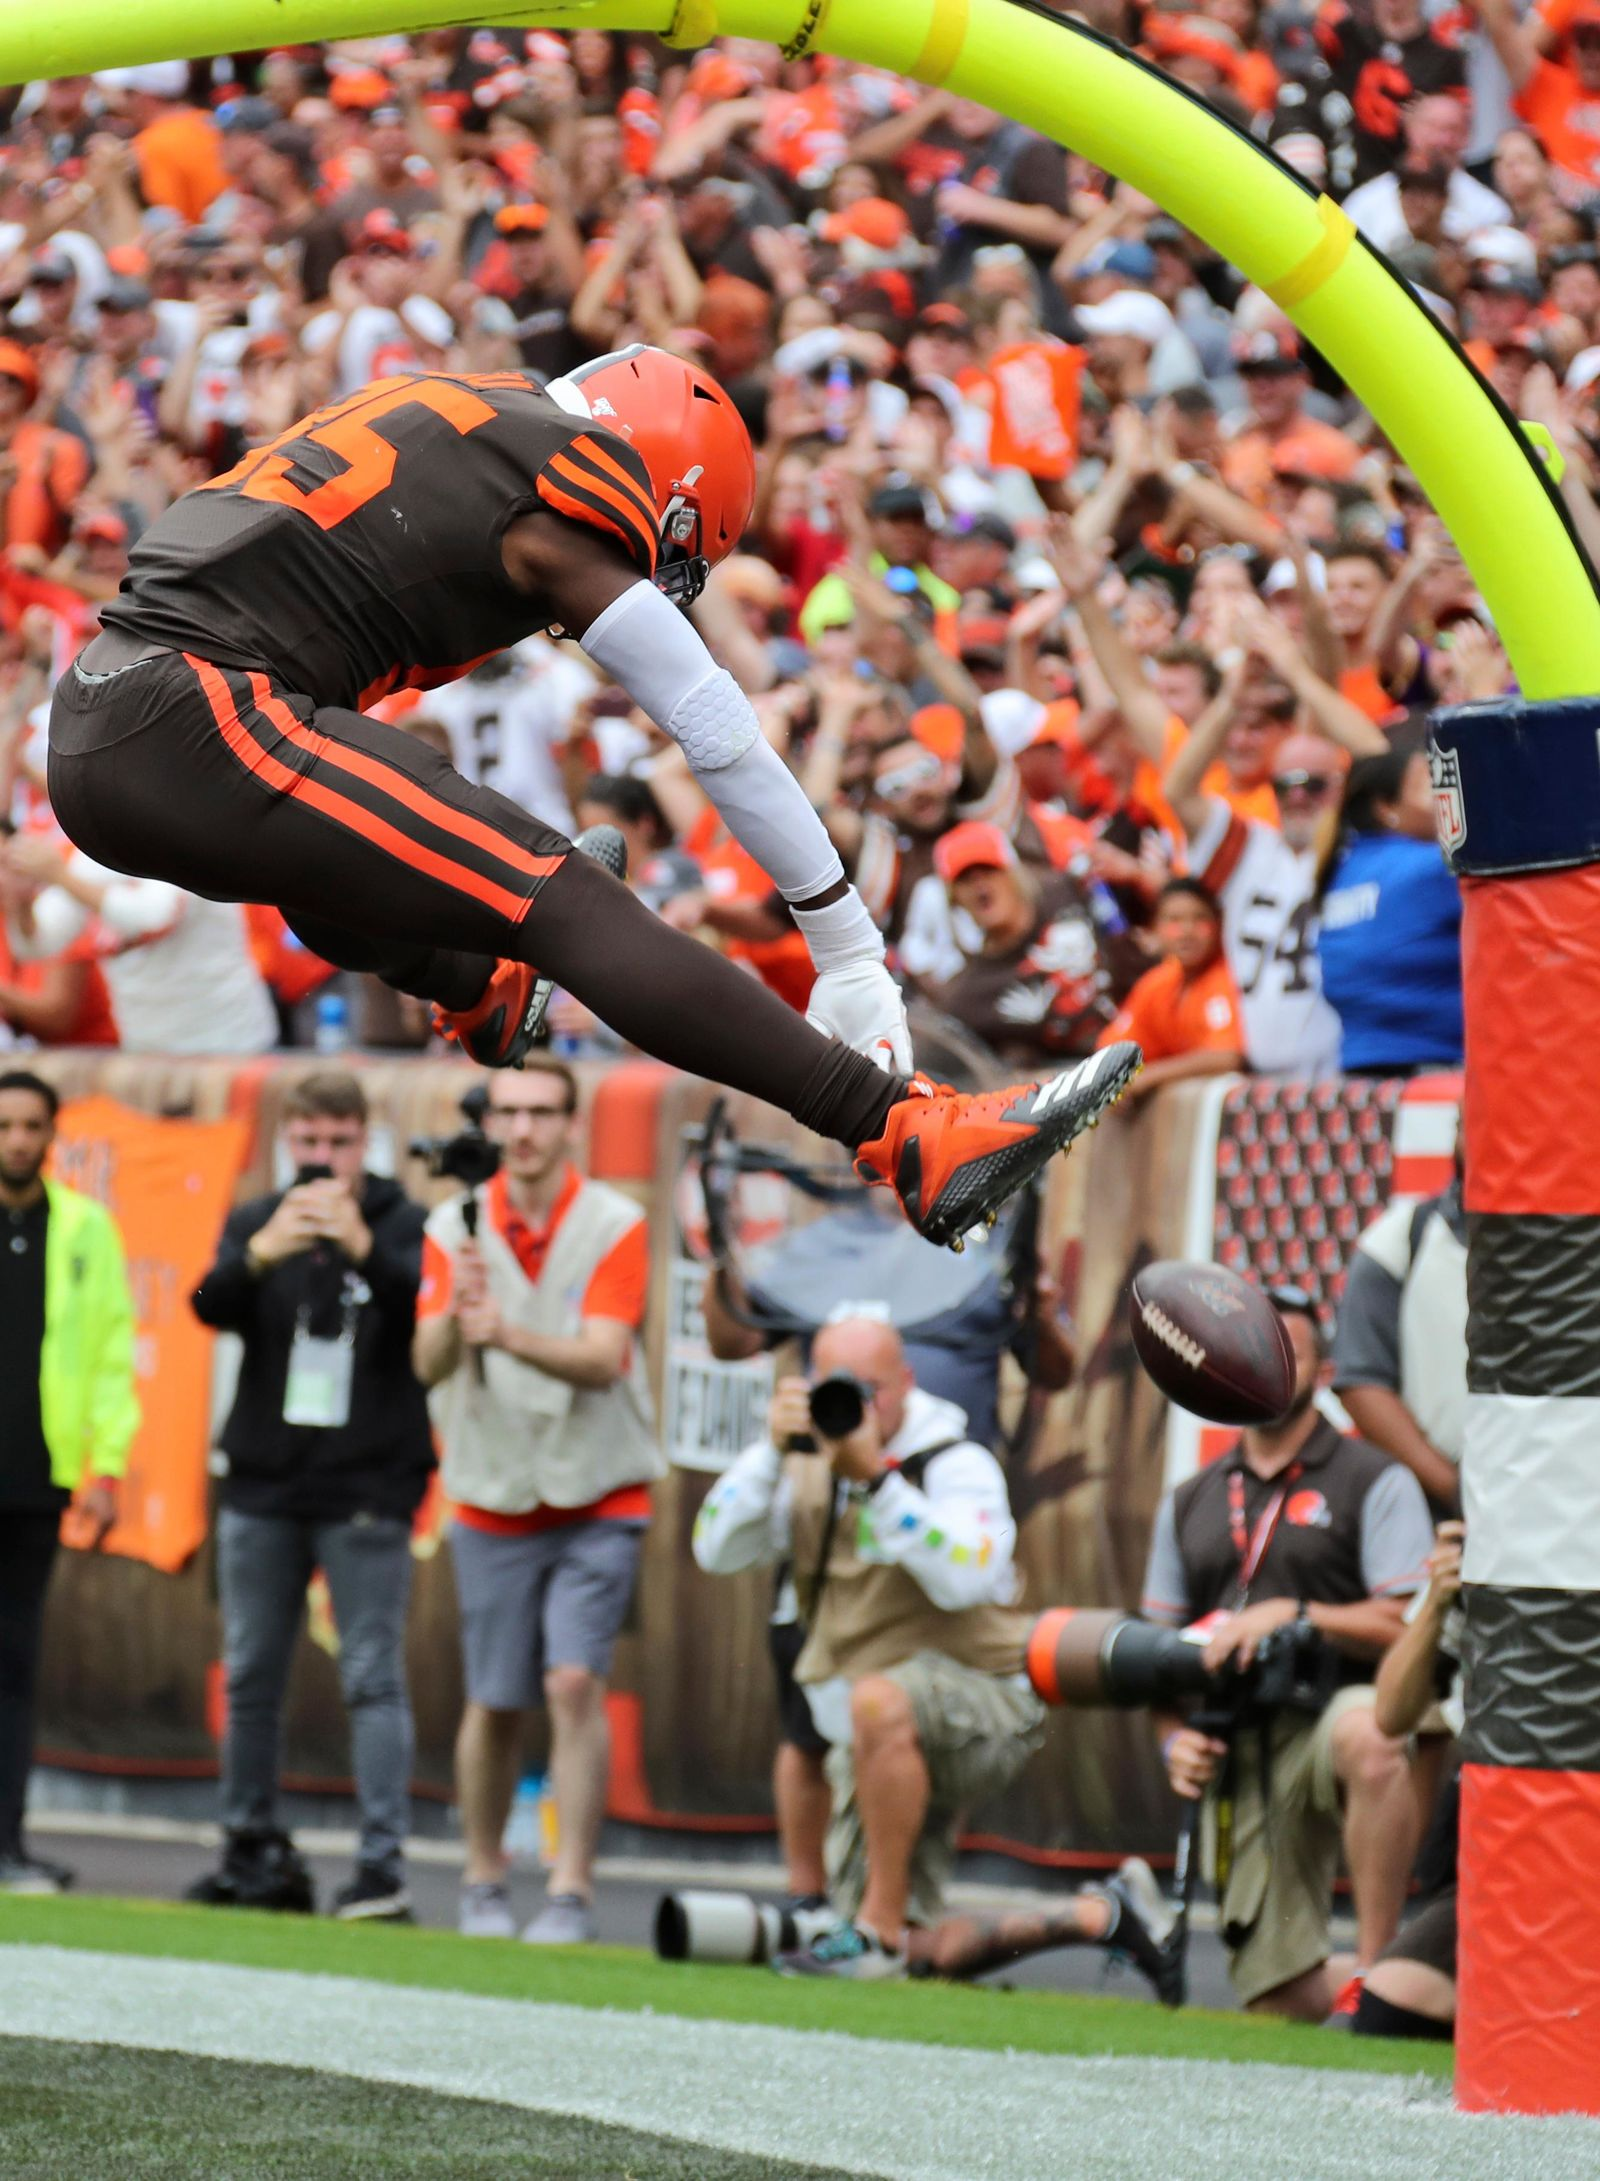 Cleveland Browns tight end David Njoku celebrates after scoring a 3-yard touchdown during the second half in an NFL football game against the Tennessee Titans, Sunday, Sept. 8, 2019, in Cleveland. (AP Photo/Ron Schwane)